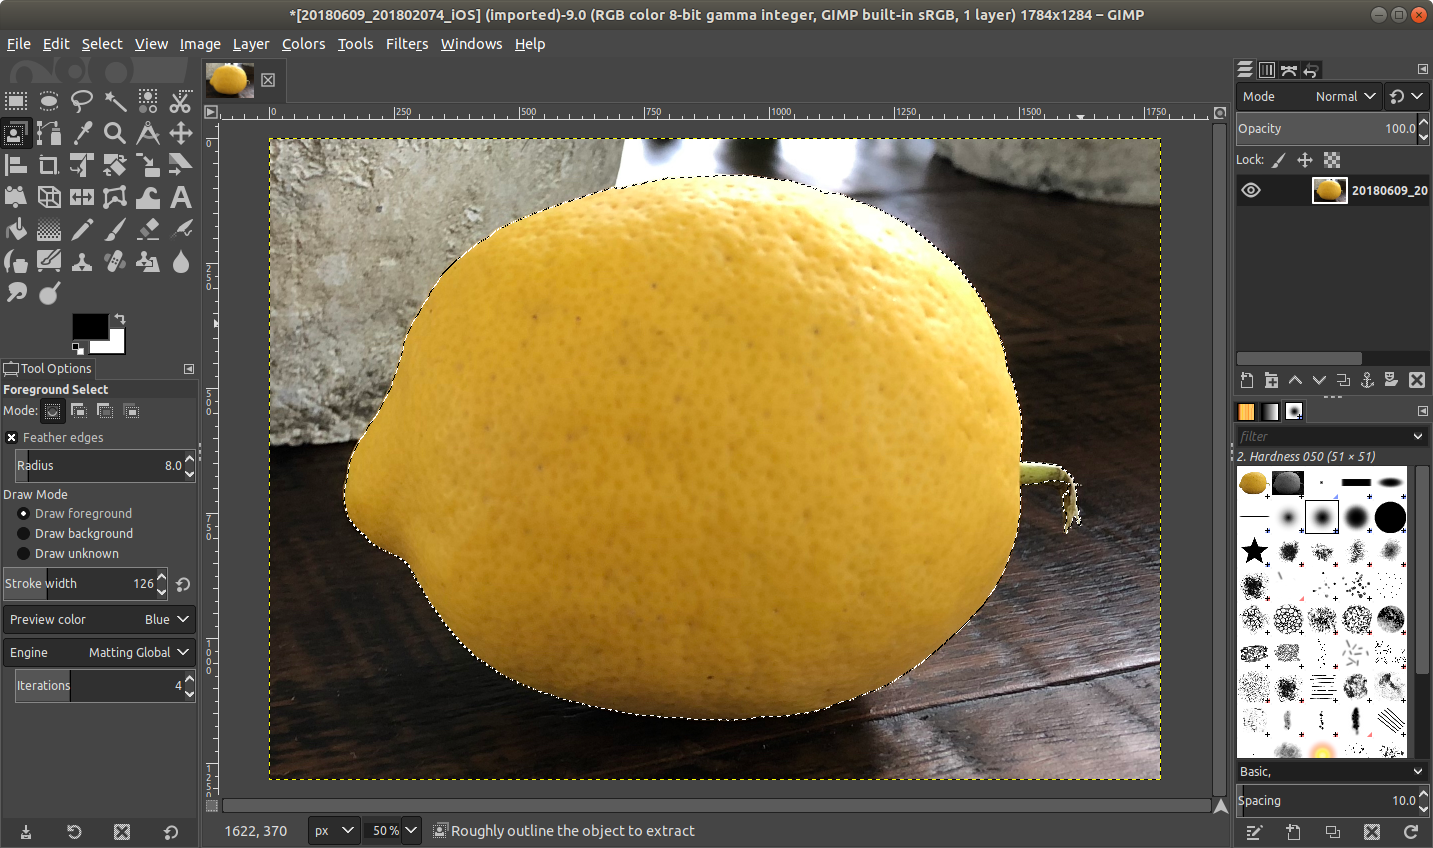 gimp_lemon_selected.png